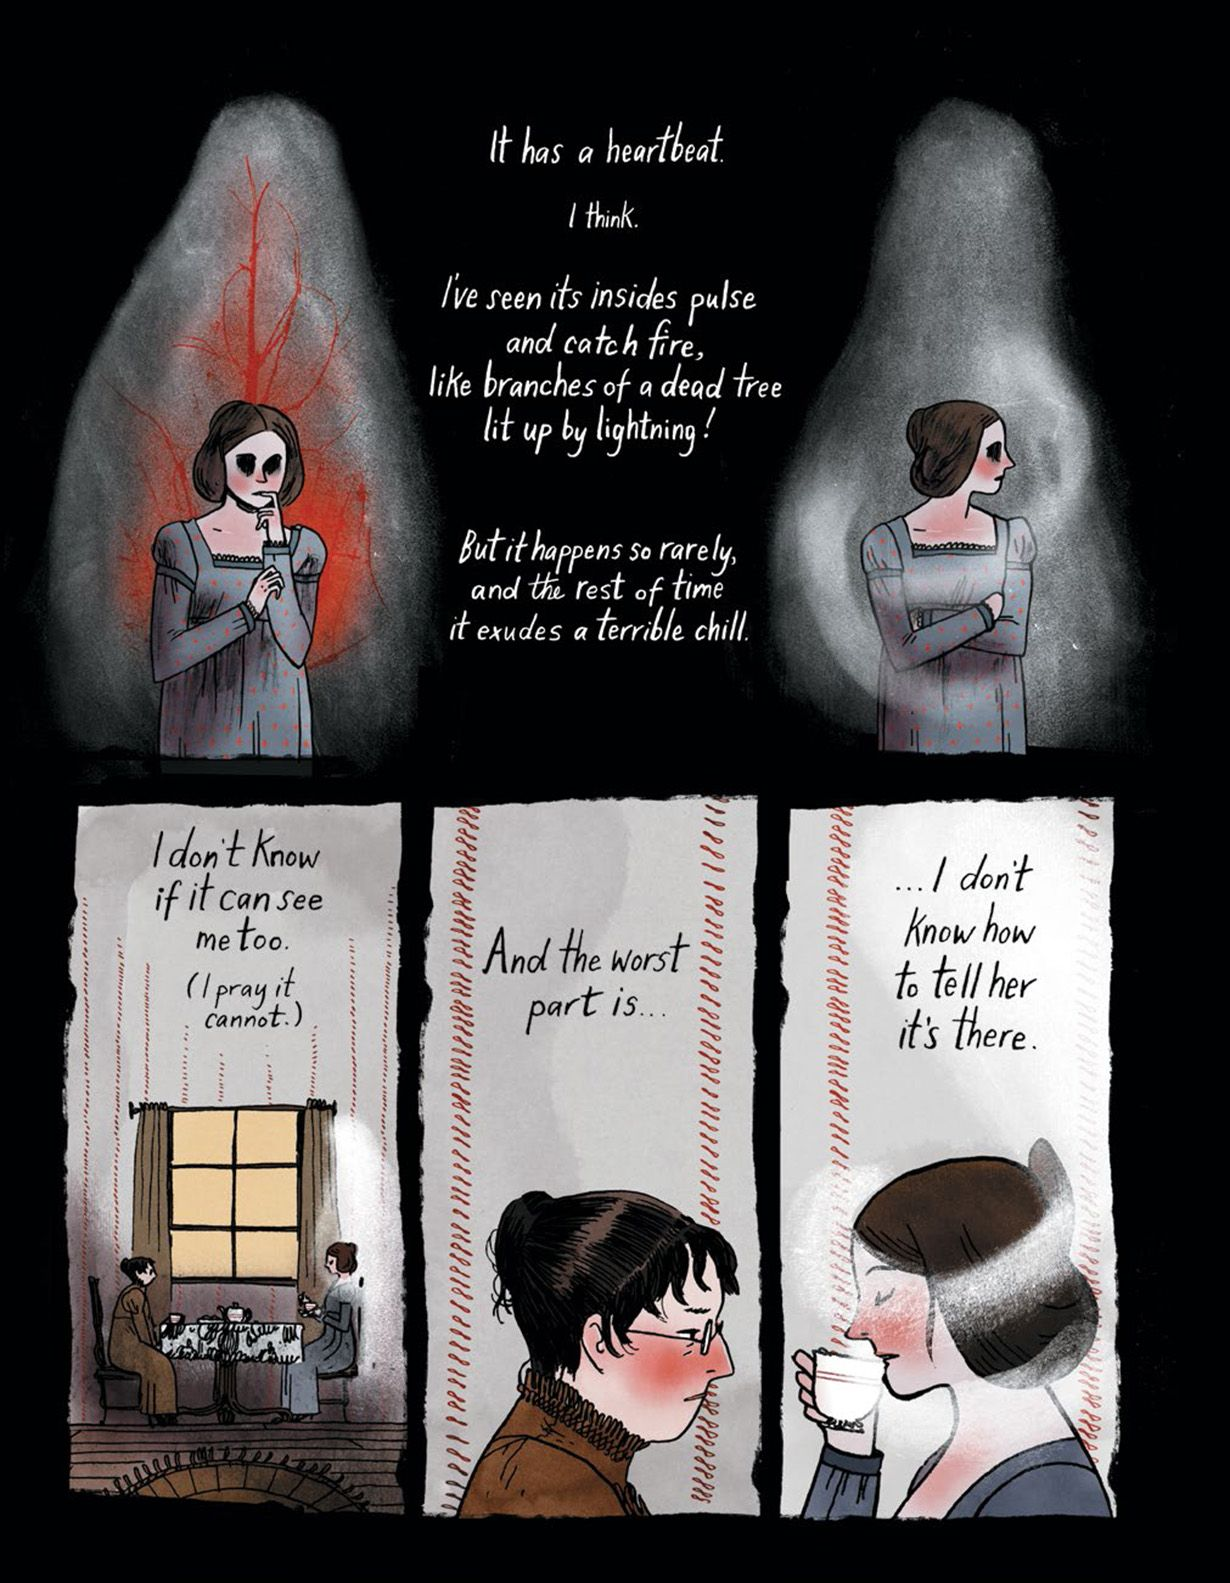 Page from Through The Woods depicting the narrator, Yvonne, observing a ghostly presence haunting her friend Janna.